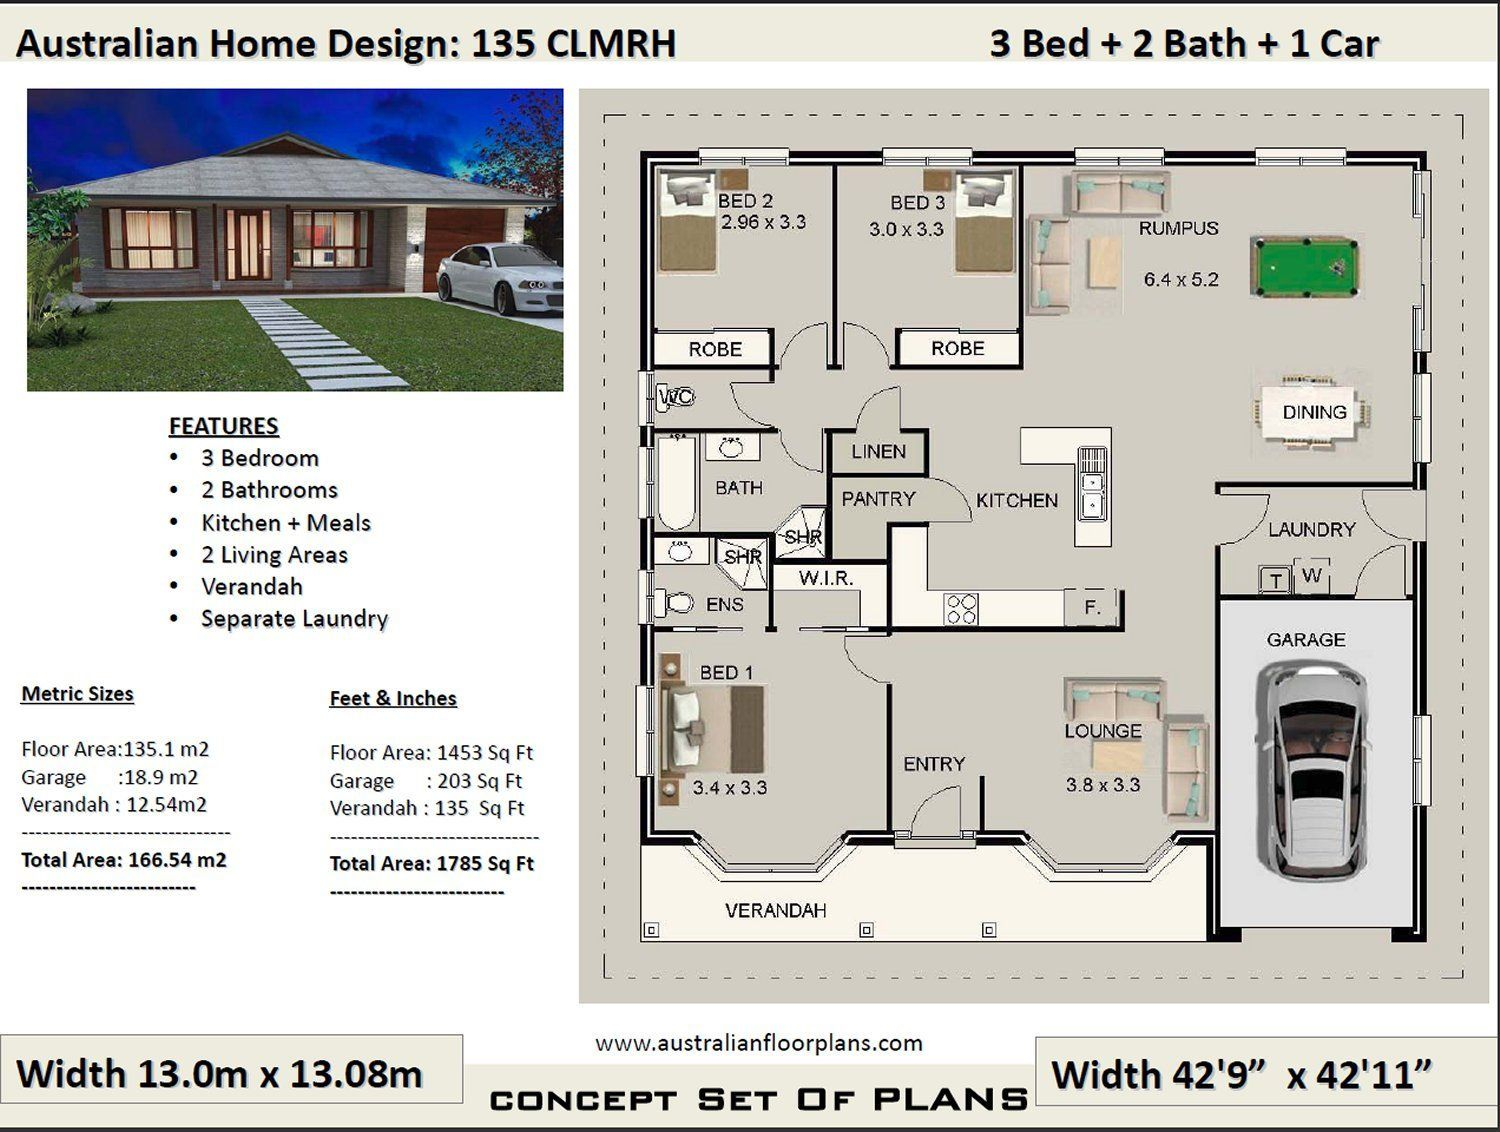 3 Bedroom Plans 166m2 1785 Sq Ft 3 Bedroom House Plans